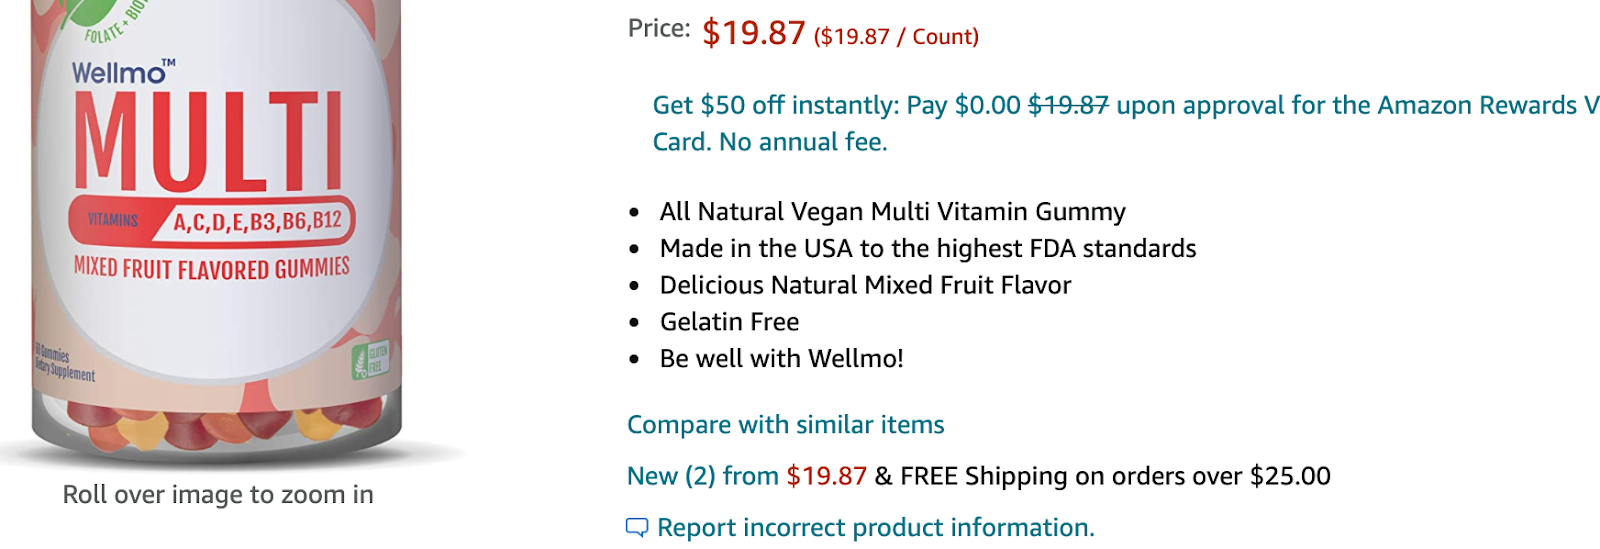 wellmo product